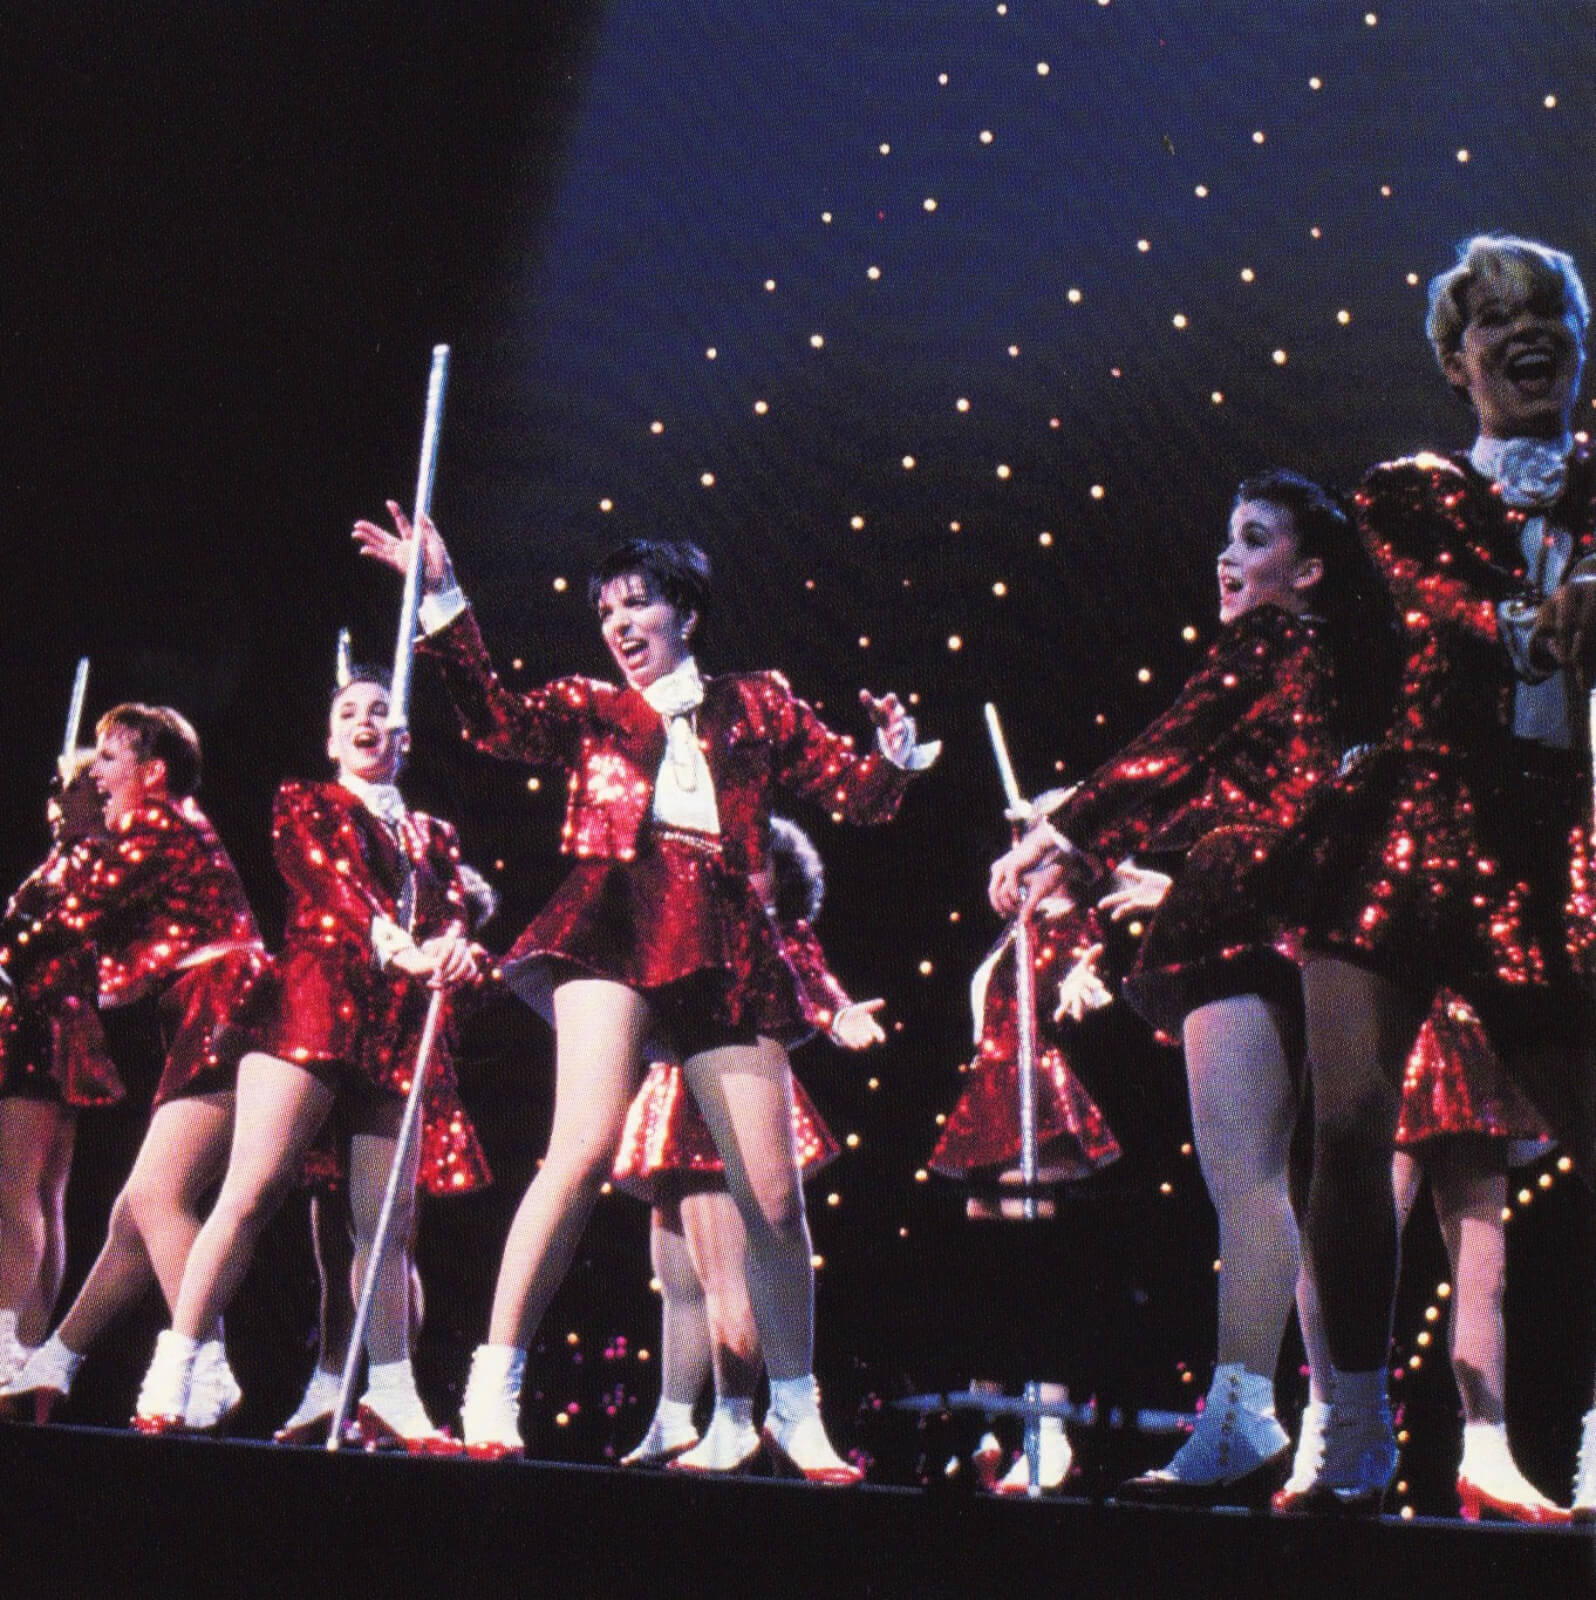 Liza and the Demon Divas. Liza and her dancers all dressed in red sequin outfits and dancing with white canes.